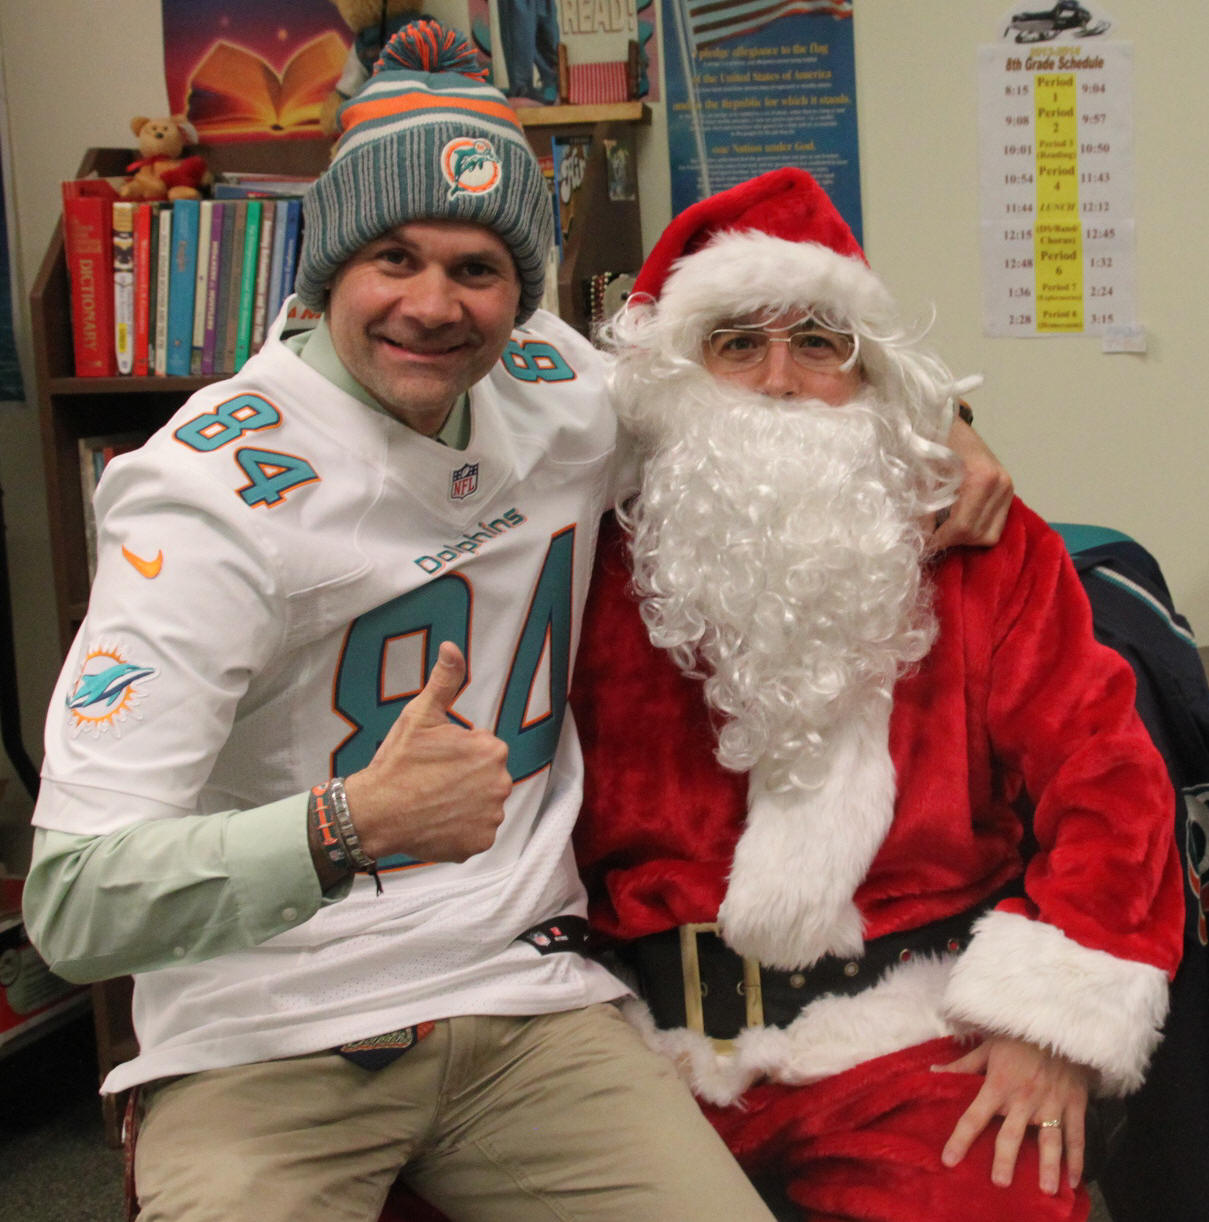 I got to tell Santa how great the Dolphins are in 2013!